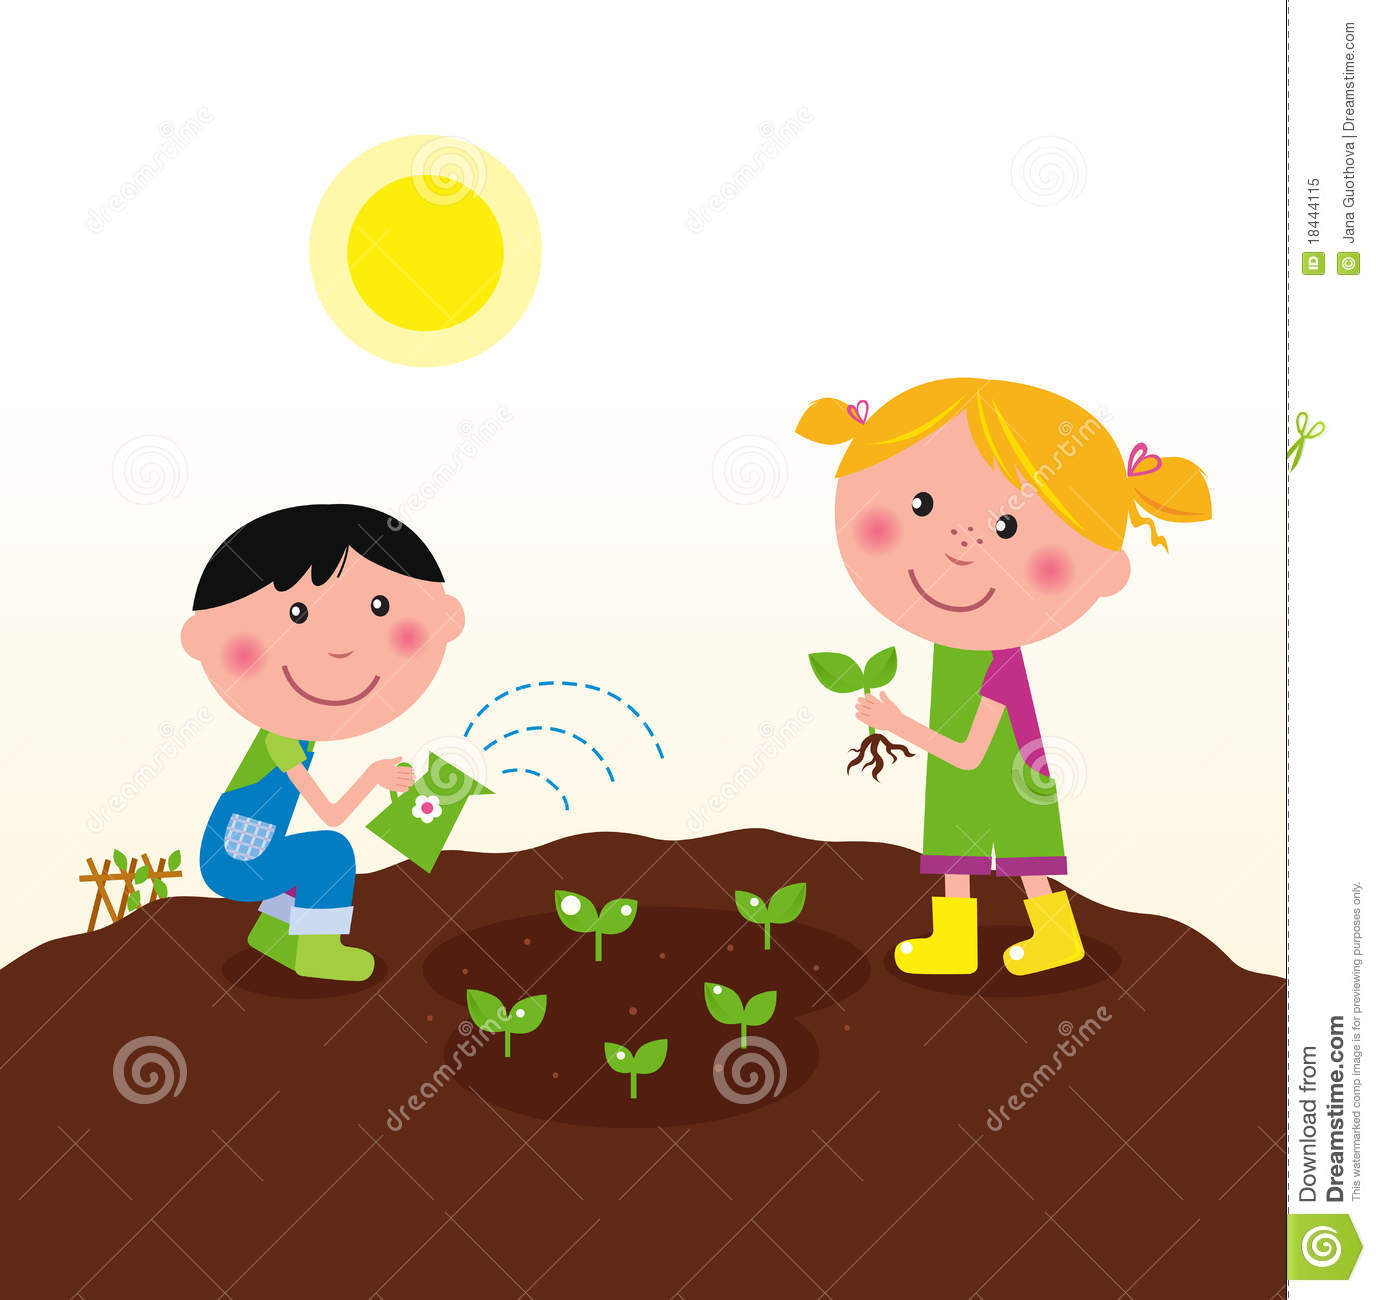 planting flag clipart middle ages clipground